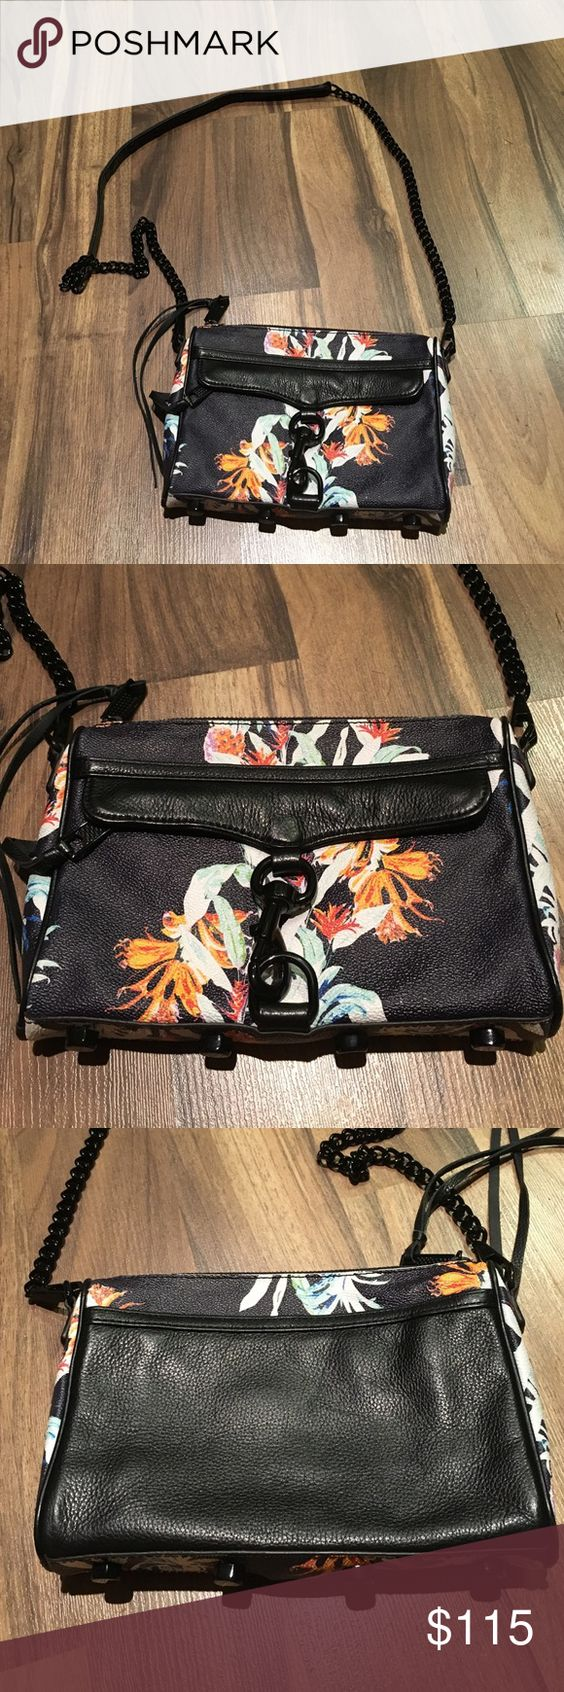 Rebecca Minkoff mini Mac Rebecca Minkoff mini Mac used once in perfect condition. Does not include a dust bag as it was purchased without one. Rebecca Minkoff Bags Crossbody Bags